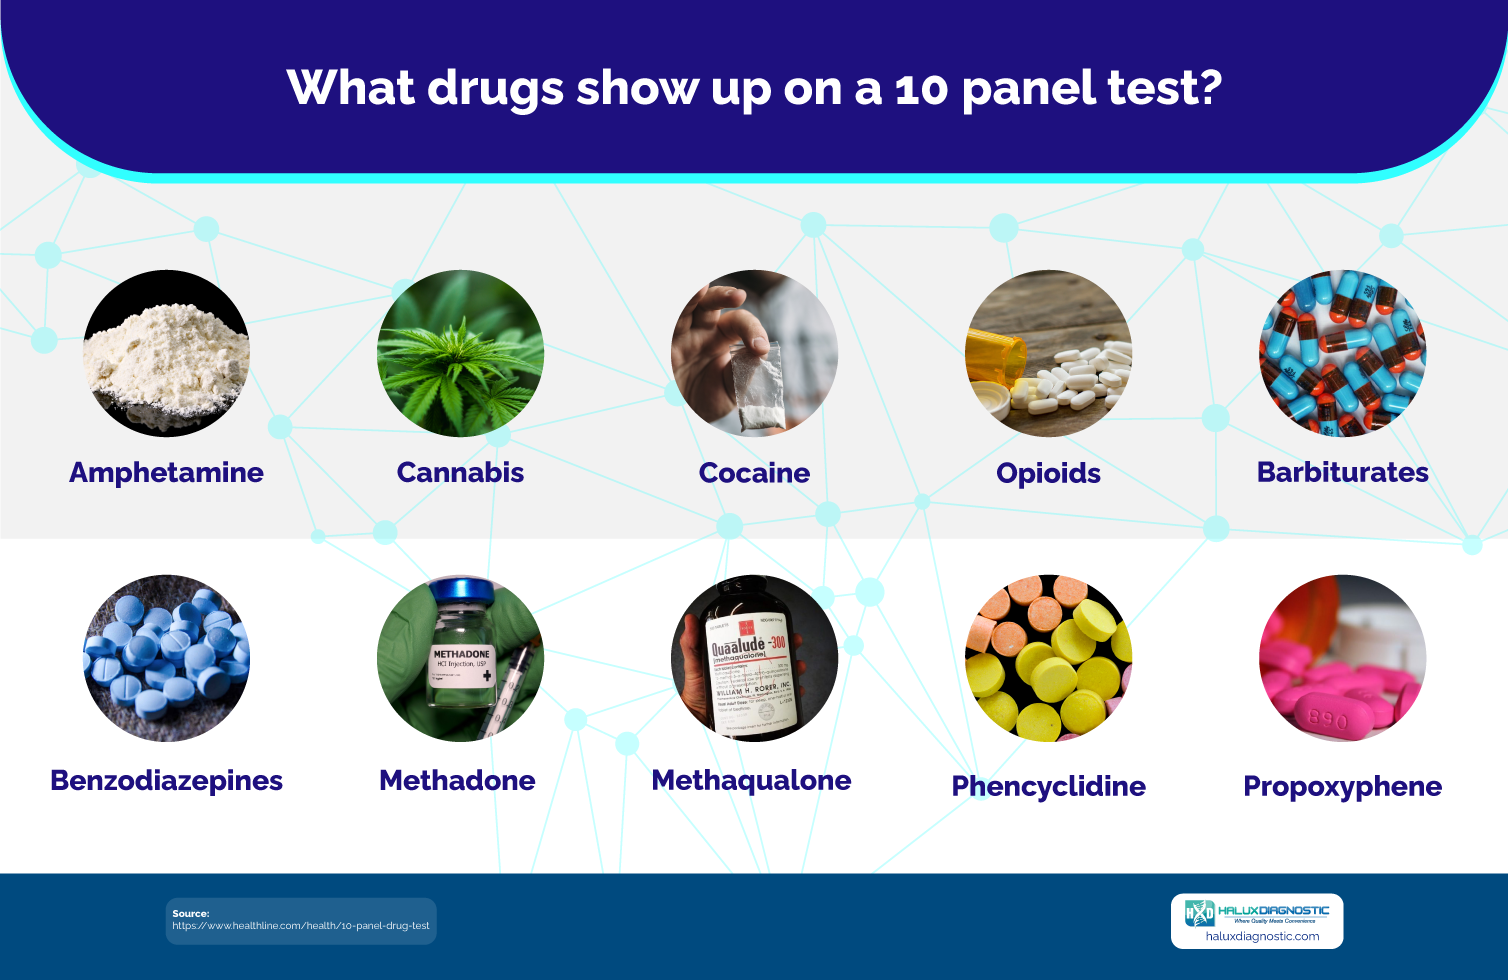 What-drugs-show-up-on-a-10-panel-test